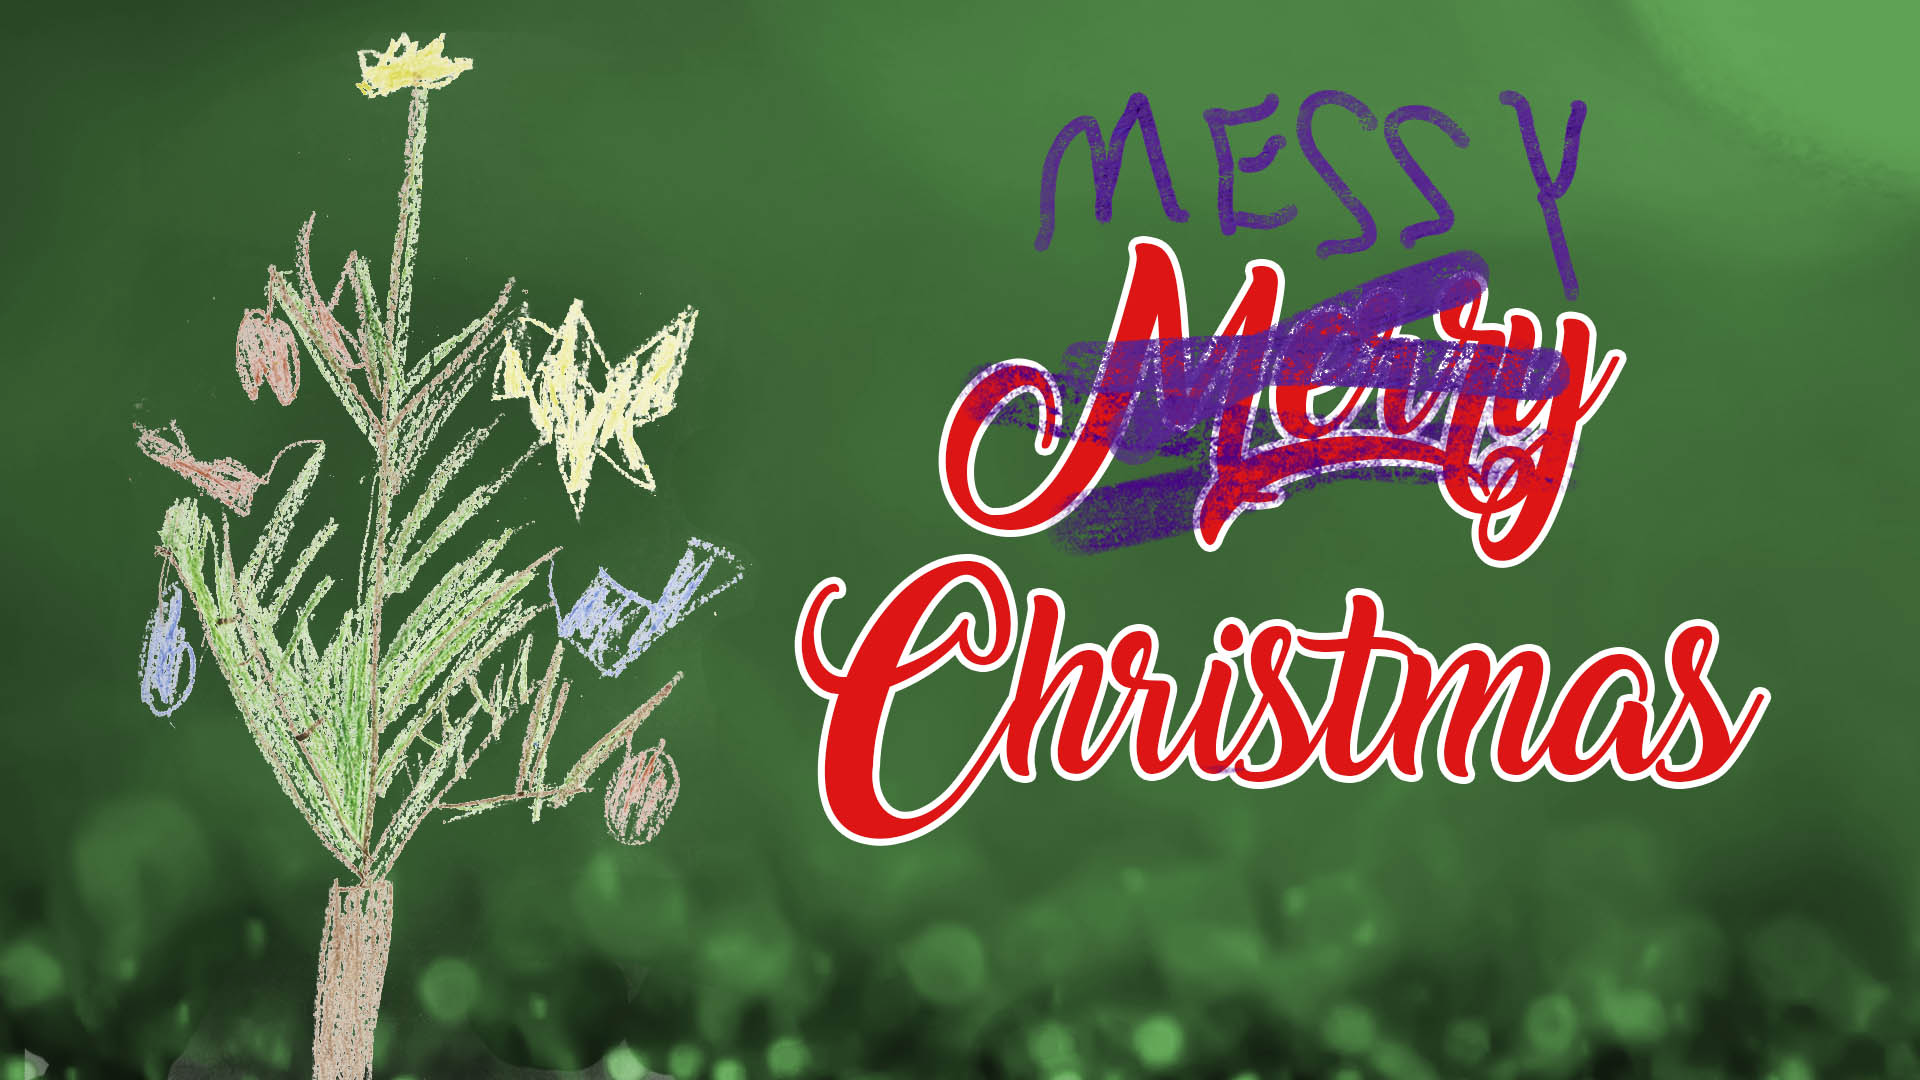 Messy Christmas banner